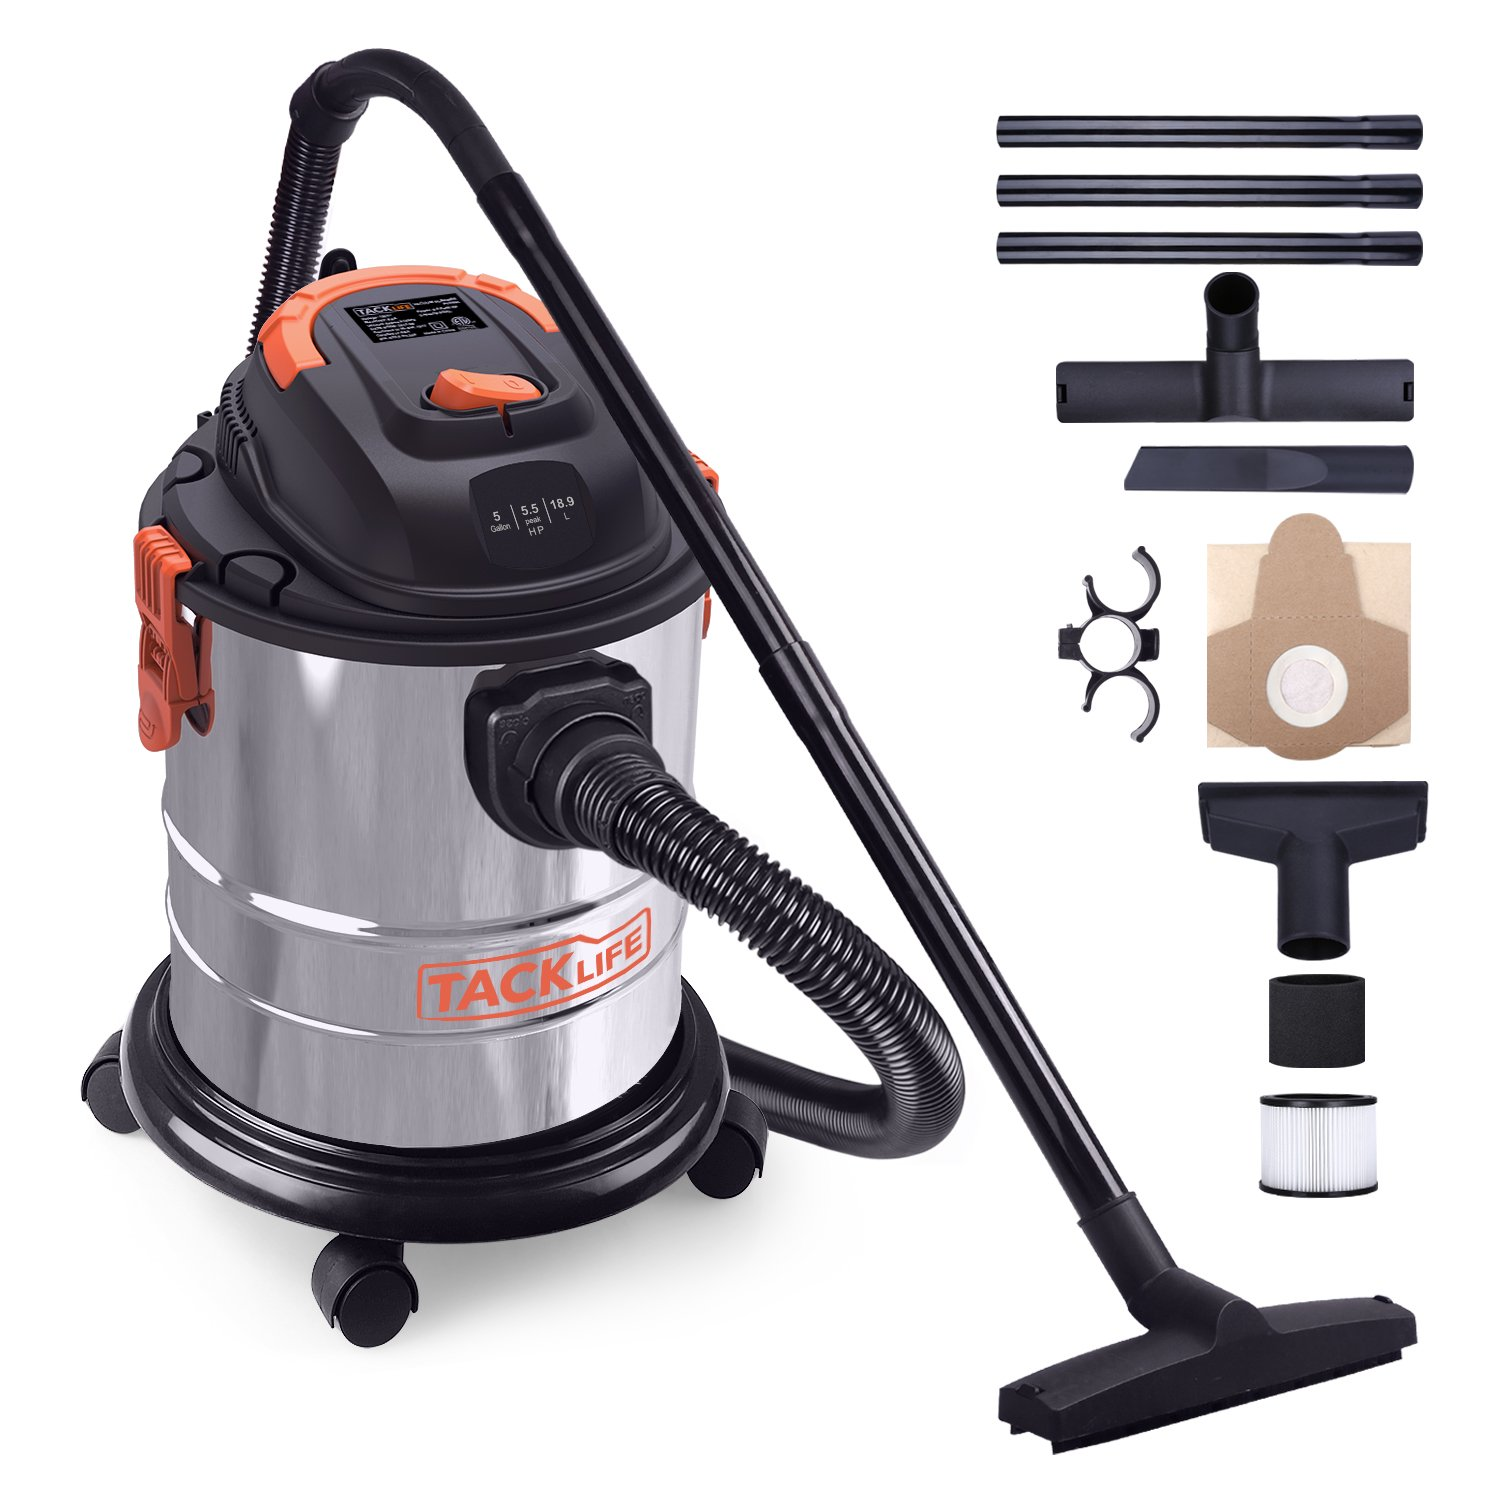 Wet Dry Vacuum, 5 Gallon, 5.5 Peak HP, 1000W Stainless Steel Wet/Dry VAC, Over 320 Square Feet Clean Range, 4-Layer Filtration System, Anti-Static Chain, All Accessories Included